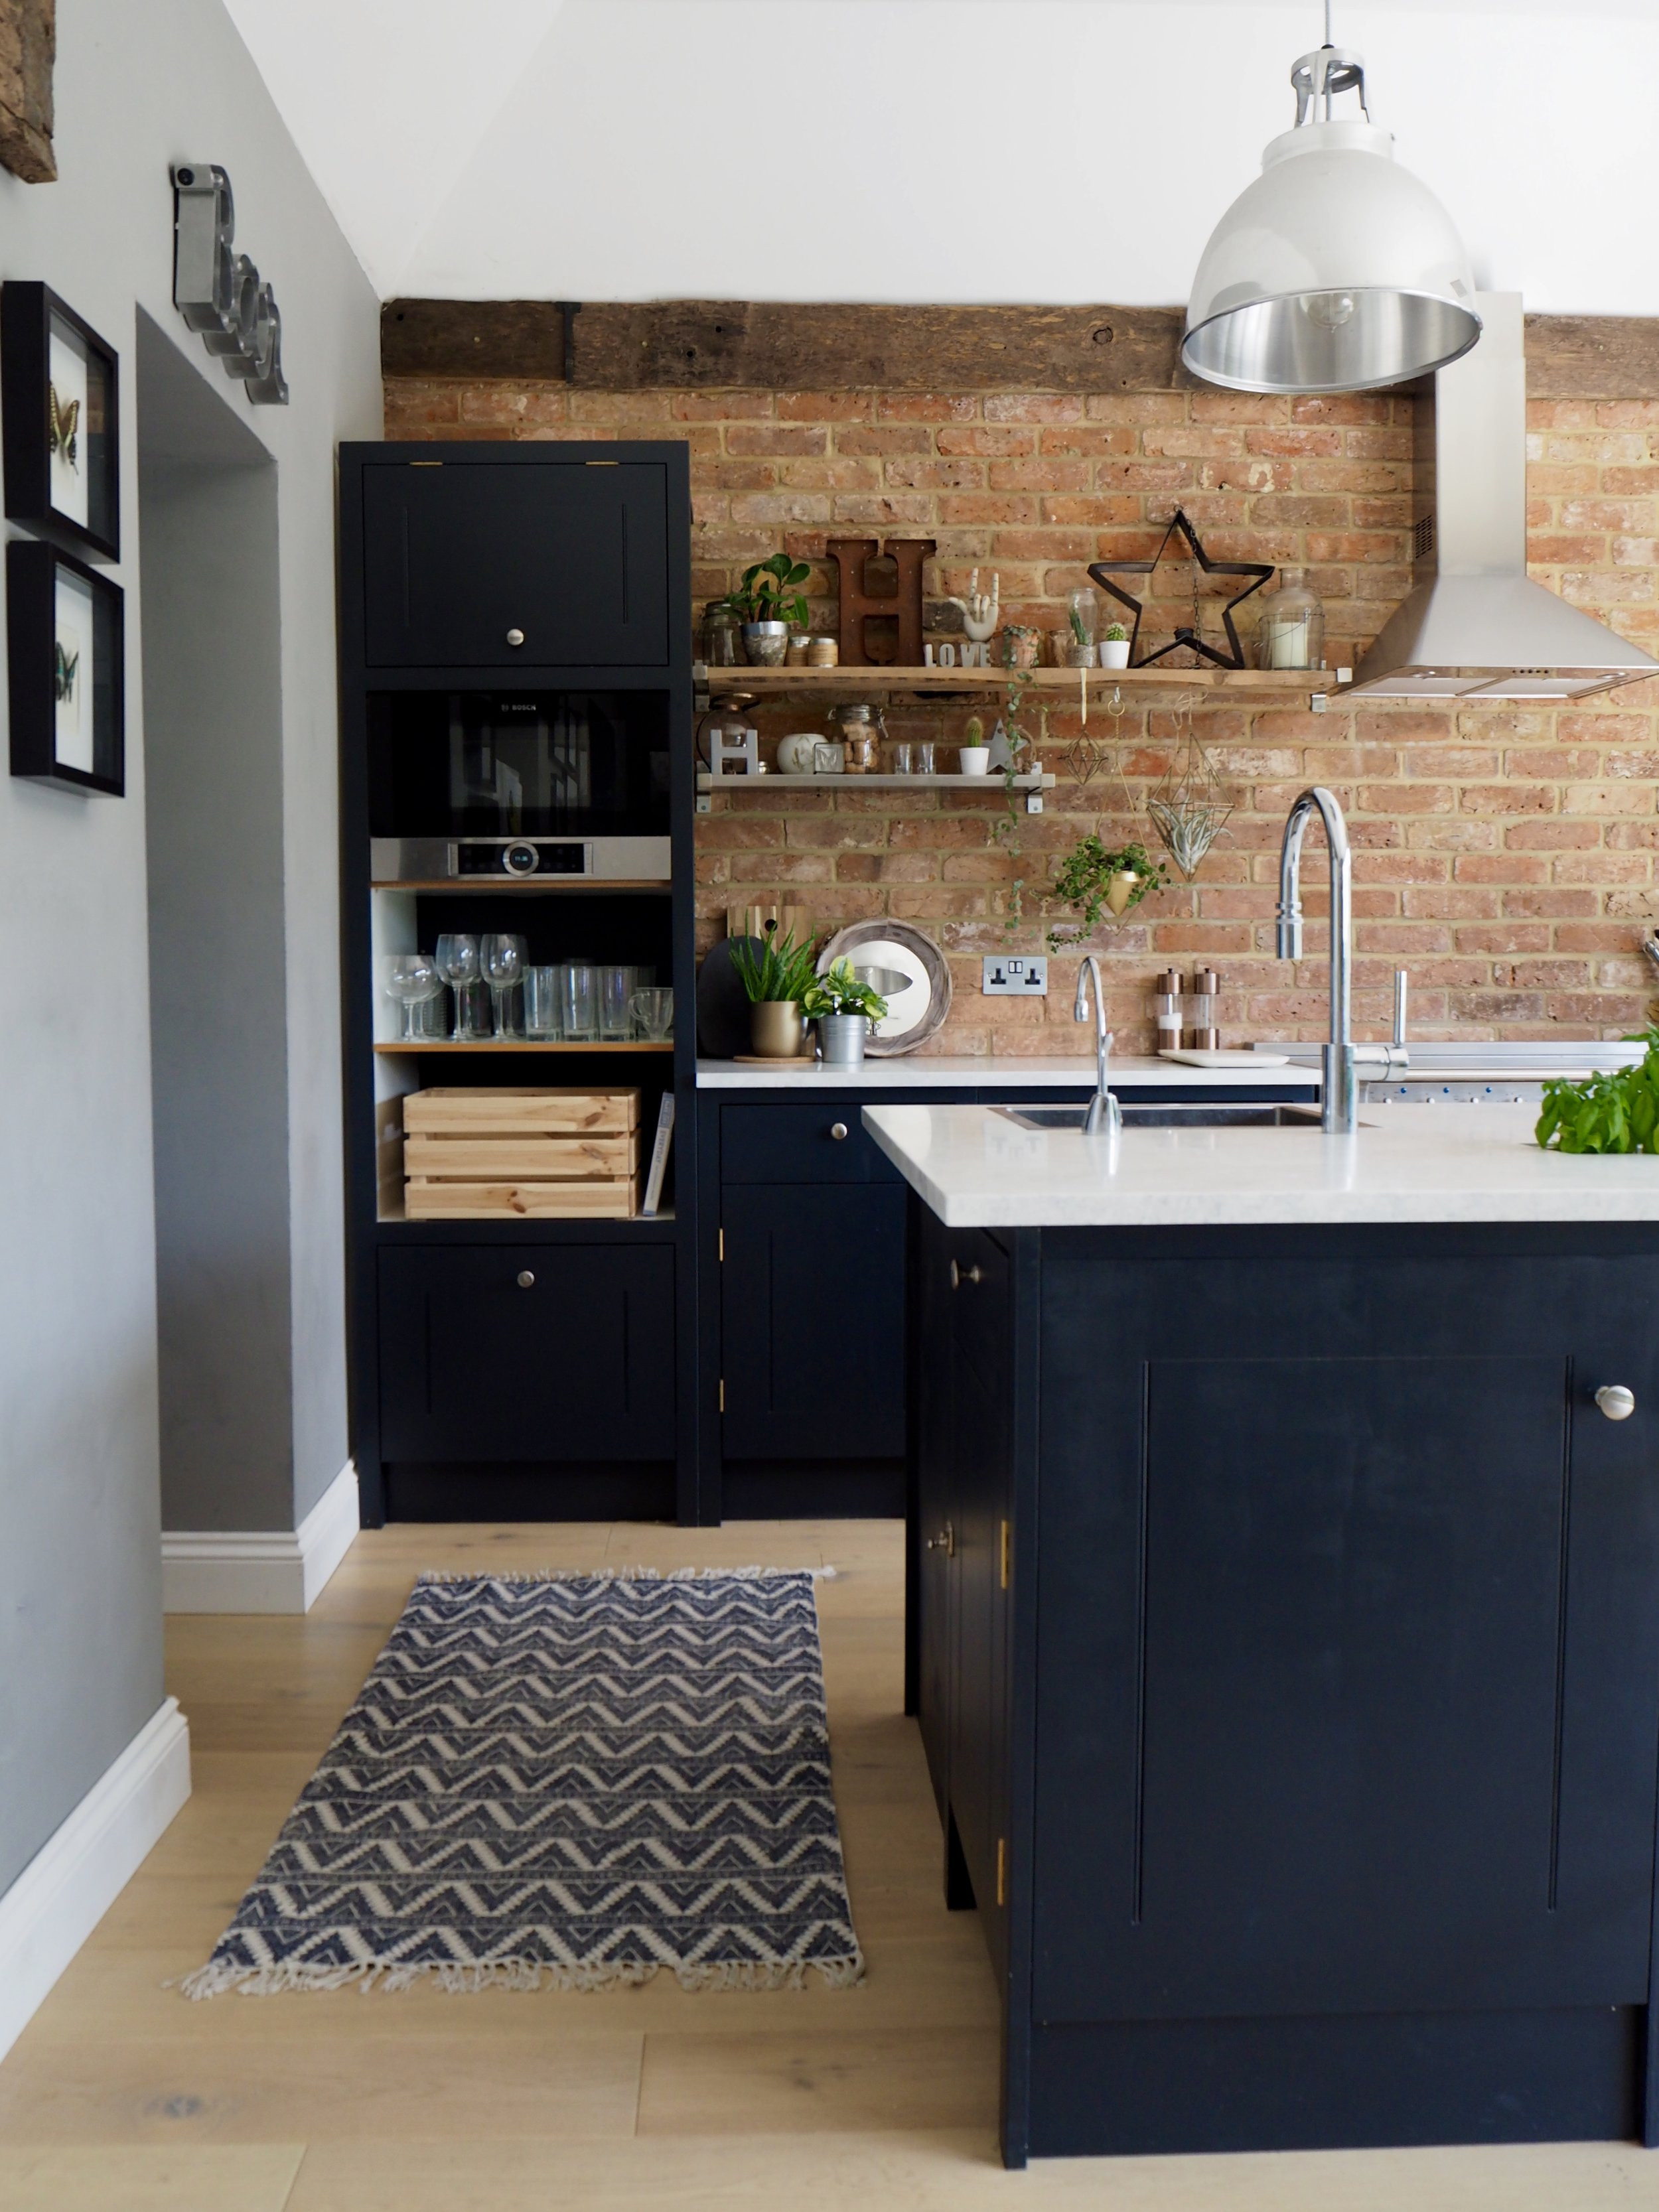 Kitchen  - Units from British Standard Cupboards….. hand painted by me in Farrow & Ball 'Railings' …...Bar stools from Rockett St George ….. Pendant lights above Island from Original BTC….. Kitchen table from La Redoute